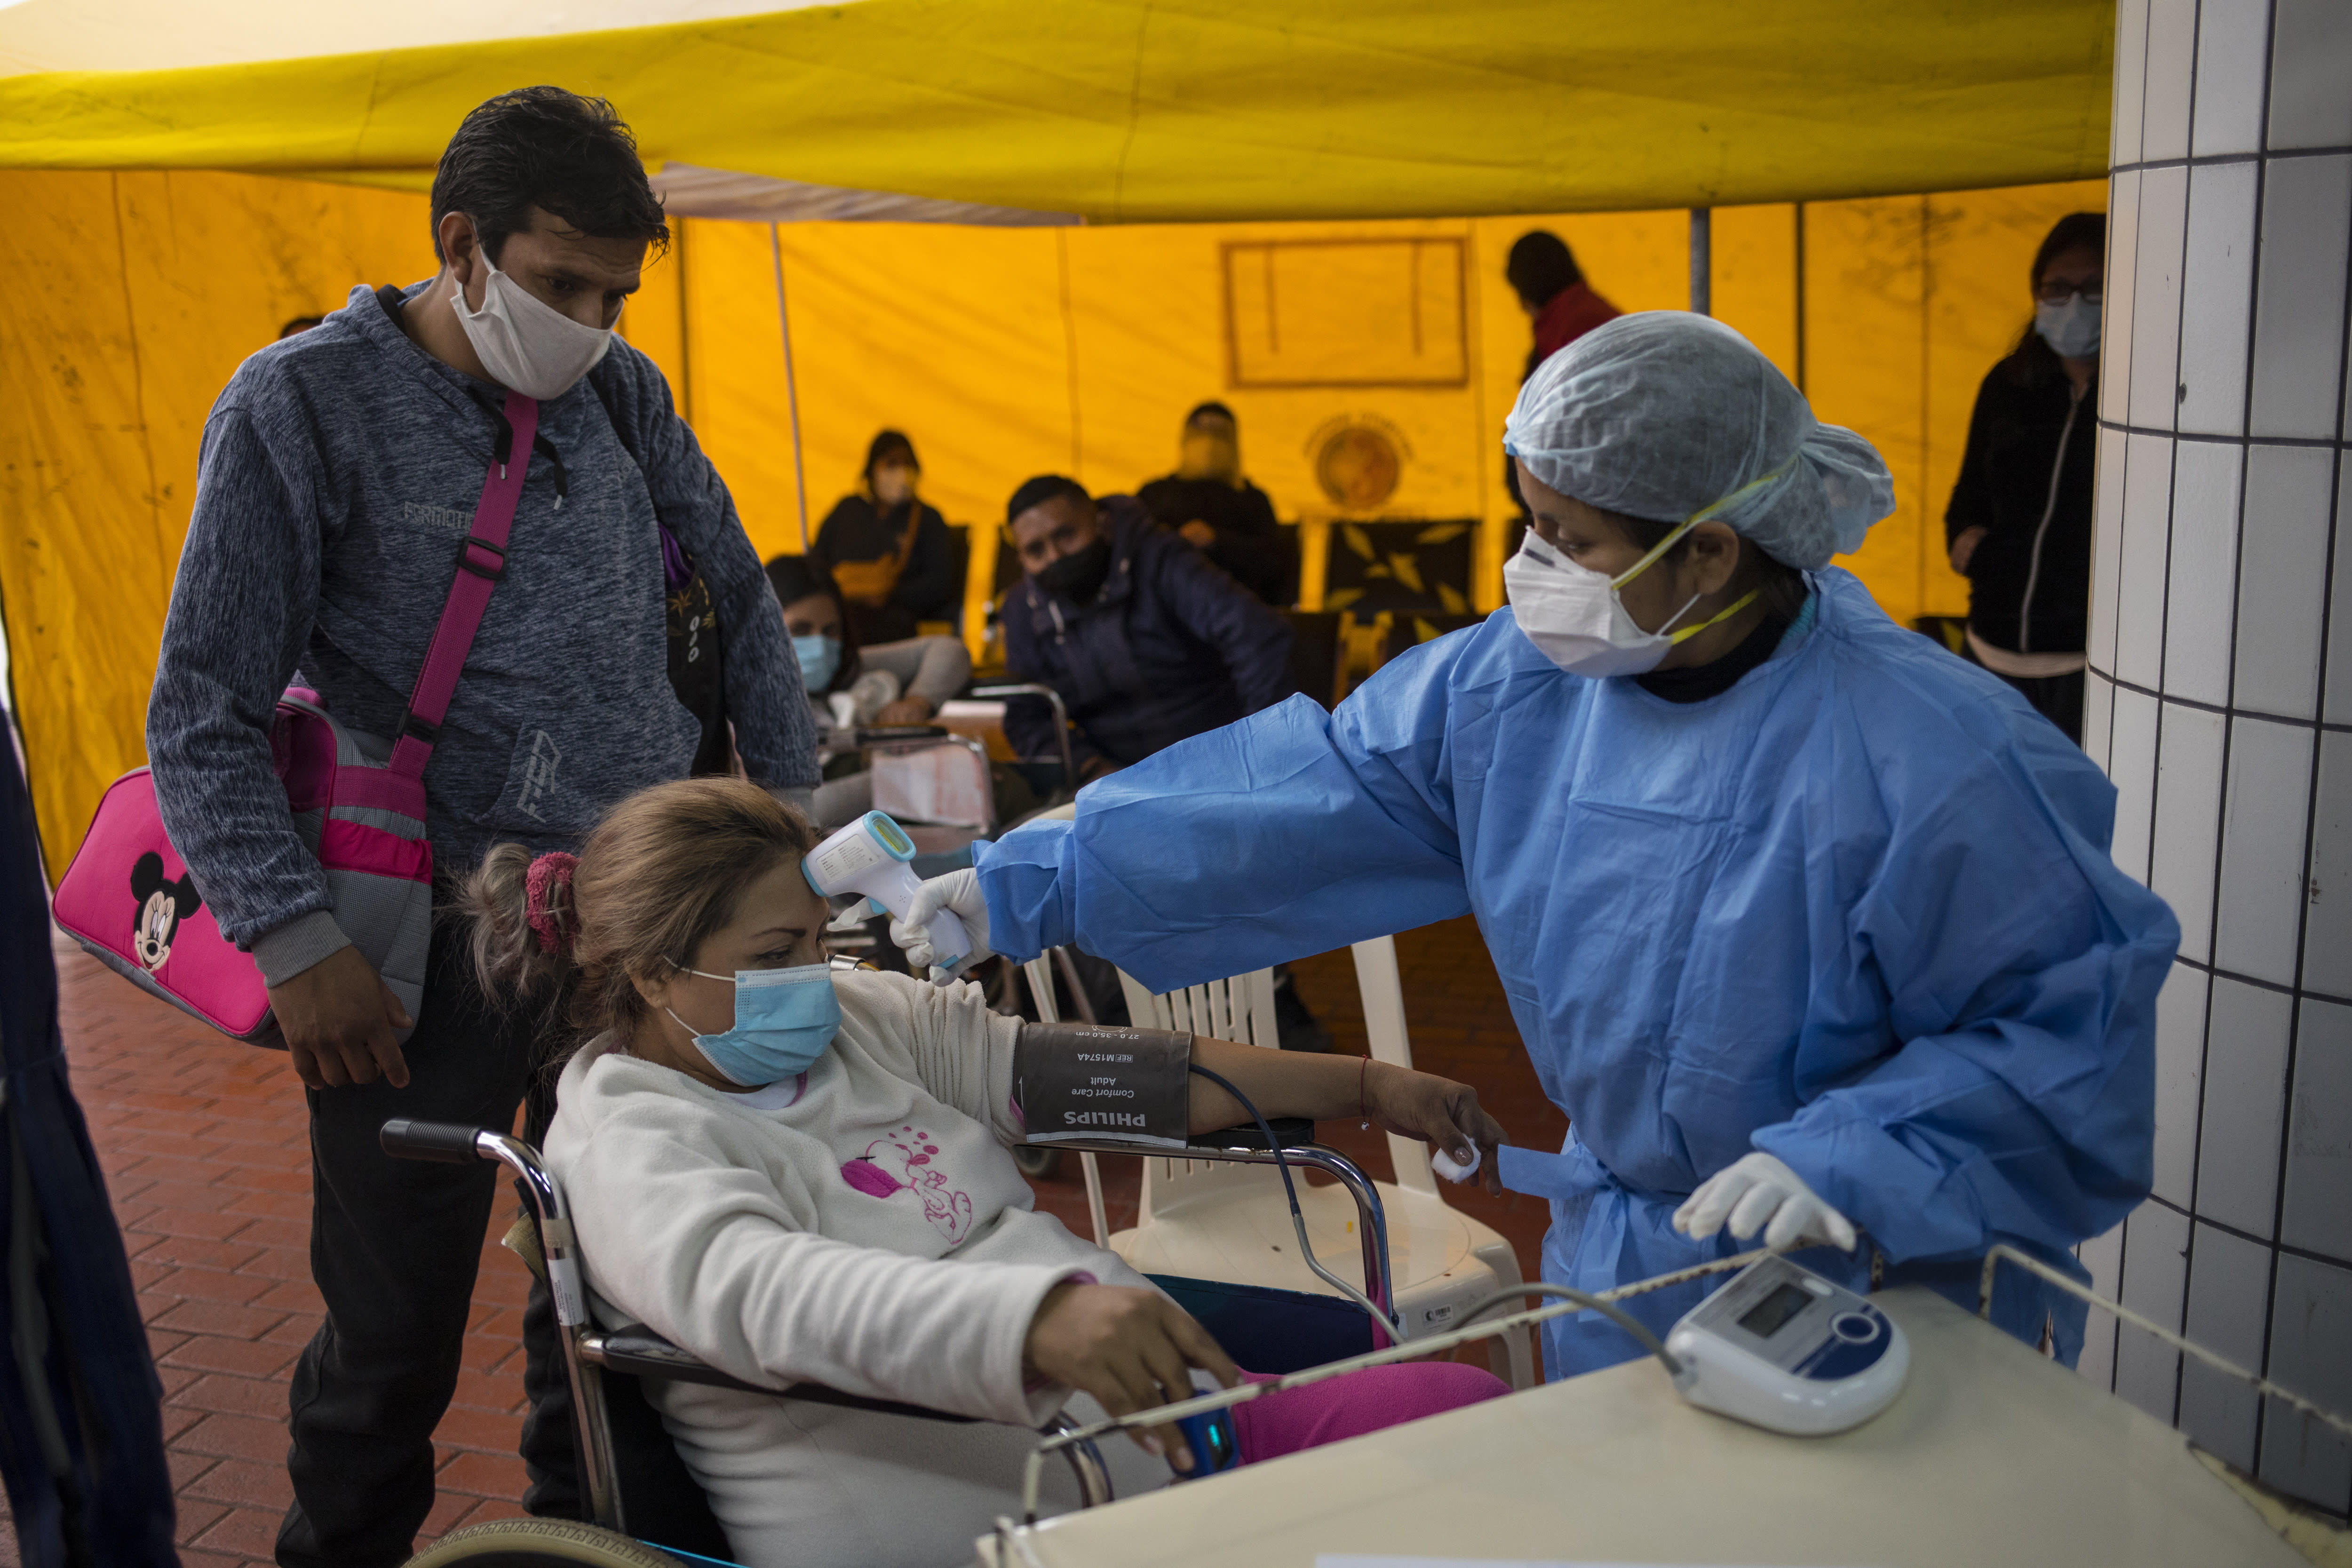 A healthcare worker measures the body temperature of Luisita Hermosillo, 32, as part of an initial check to identify if she is infected with the new coronavirus, at an entry pointy set up to receive pregnant women at the National Perinatal and Maternal Institute in Lima, Peru, Thursday, July 9, 2020. Because the Institute has barred partners or other relatives from attending births, women are giving birth alone. (AP Photo/Rodrigo Abd)